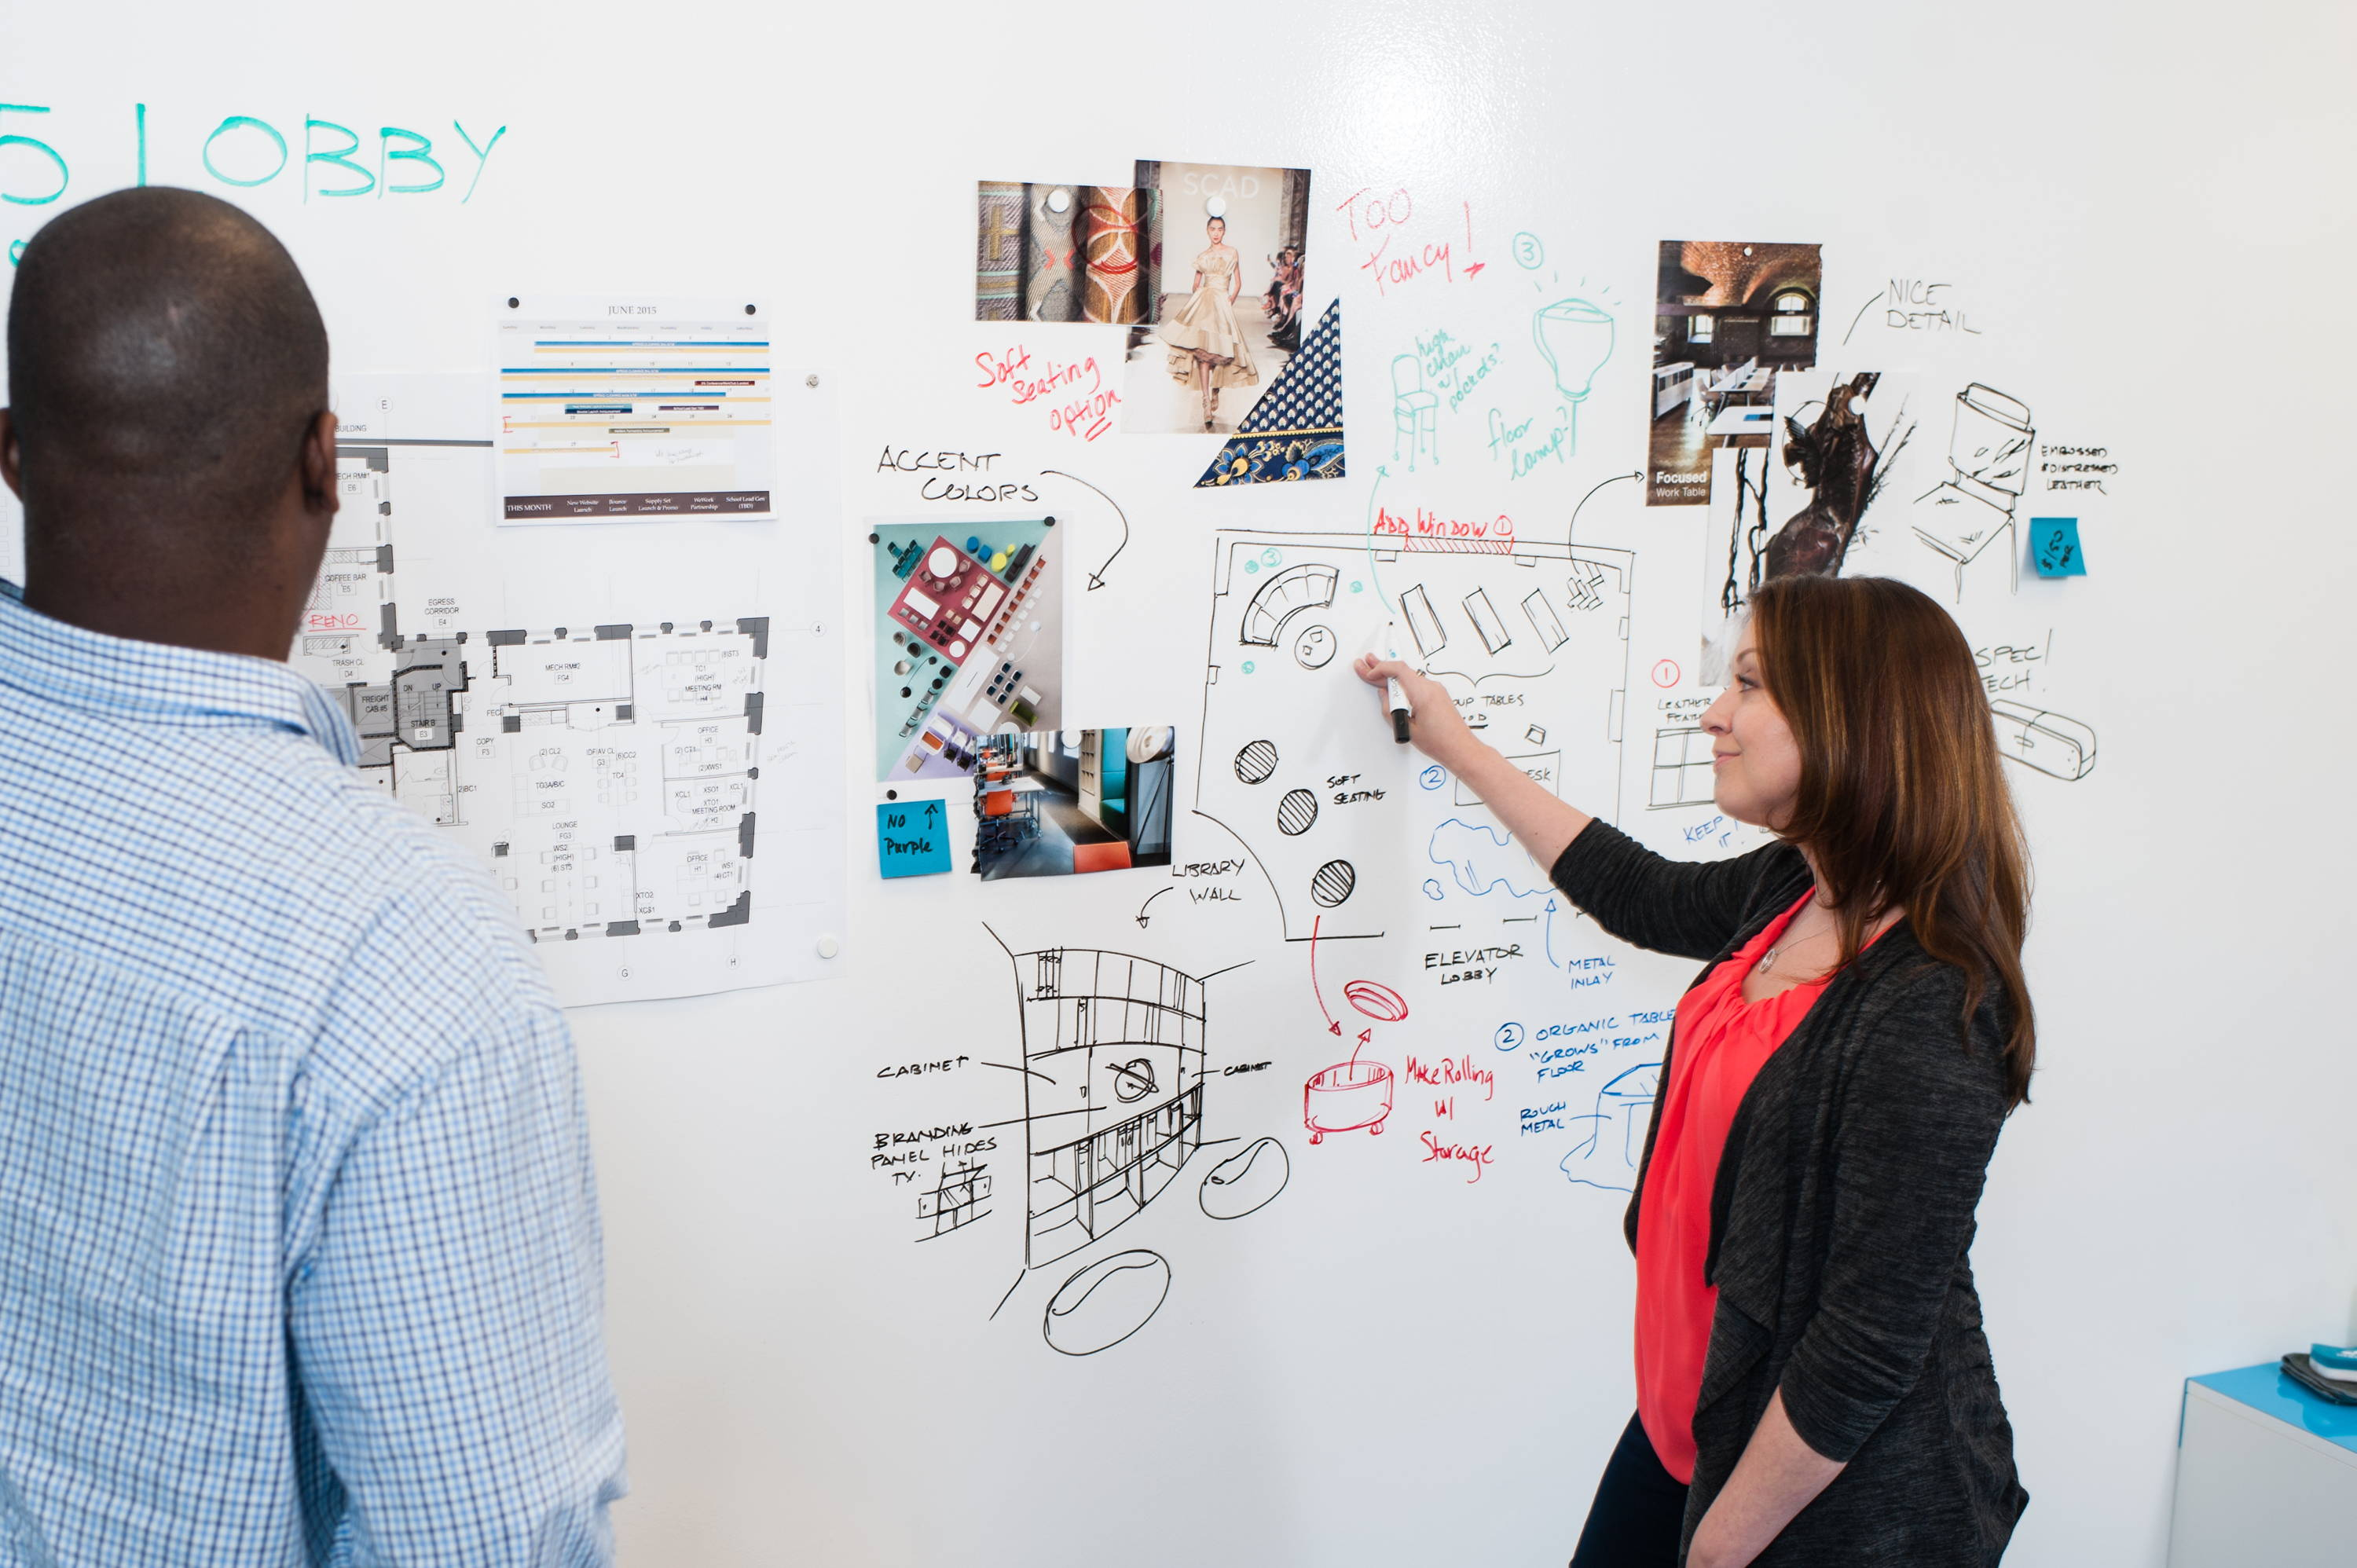 IdeaPaint Dry Erase paint and magnetic solutions for workplaces. IdeaPaint's solutions help companies create workspaces that foster collaboration, promote creativity, and increase engagement so that your company can increase productivity and bring great ideas to life.